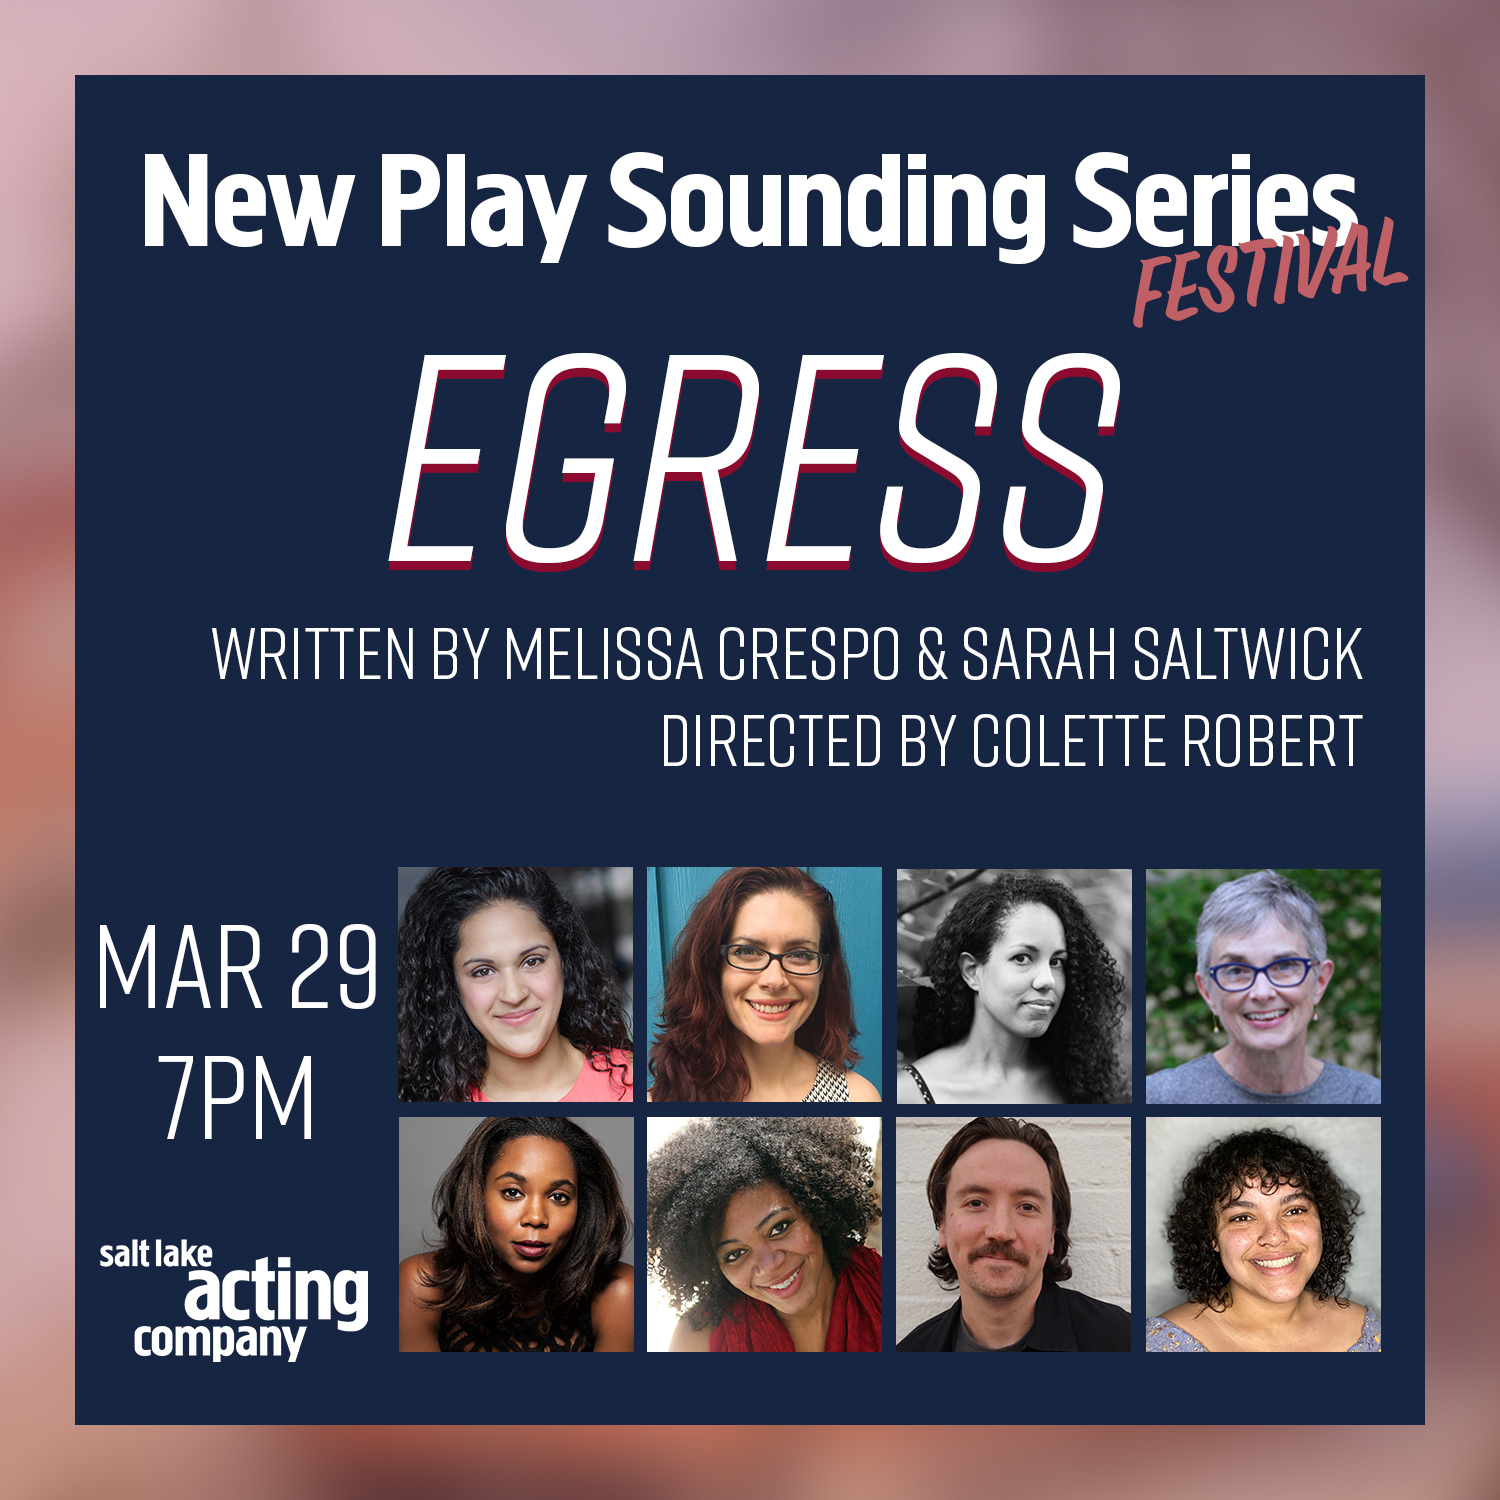 A promotional image featuring eight headshots of the cast, director, dramaturg, and playwrights of EGRESS